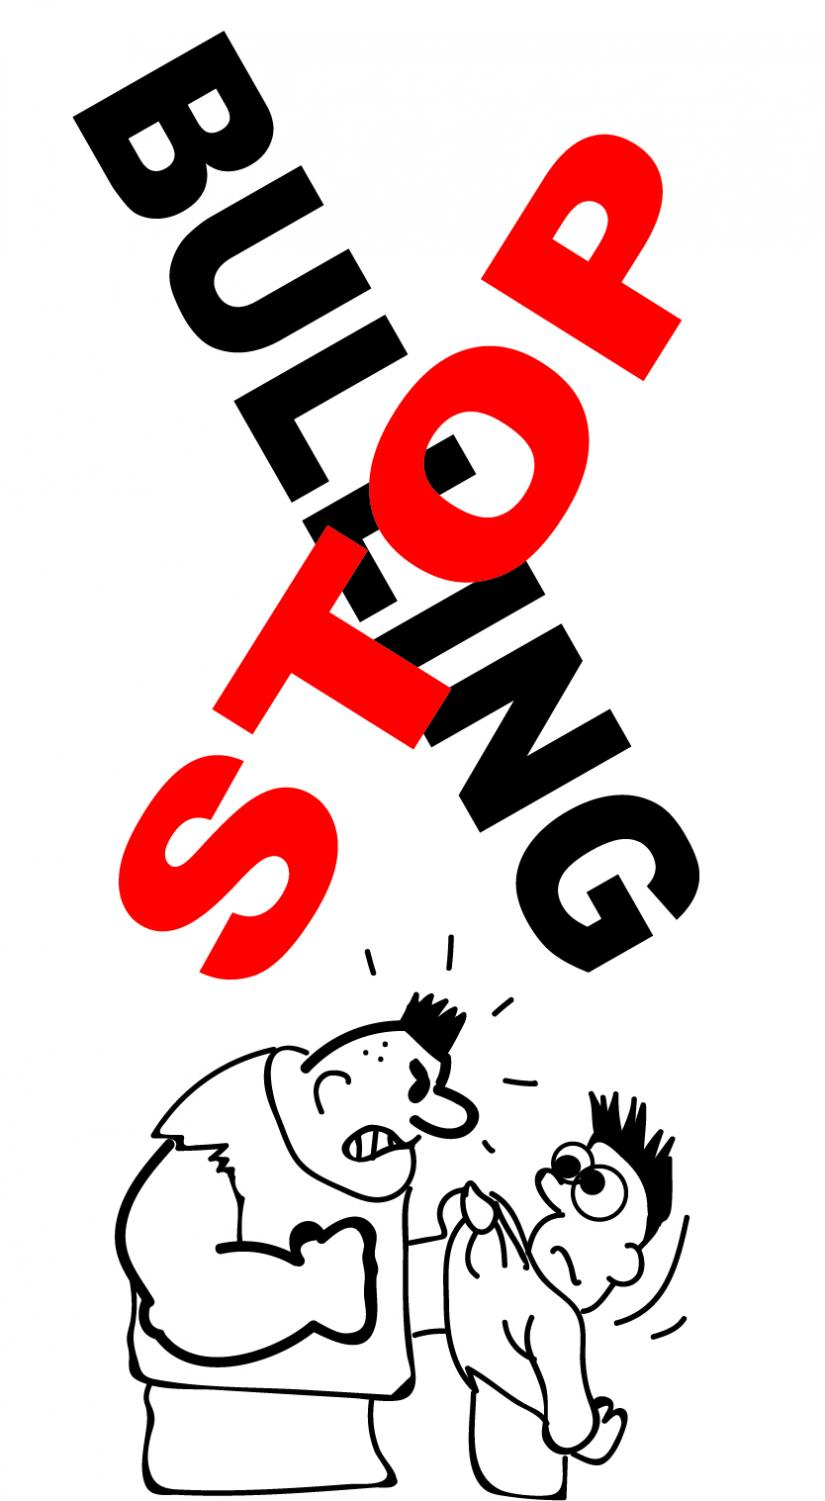 Bullying is caused by looks, personality, acts, rumors, sexuality, and so much more. In 2016, there were 44,965 recorded suicides, up from 42,773 in 2014, according to the CDC's National Center for Health Statistics (NCHS).